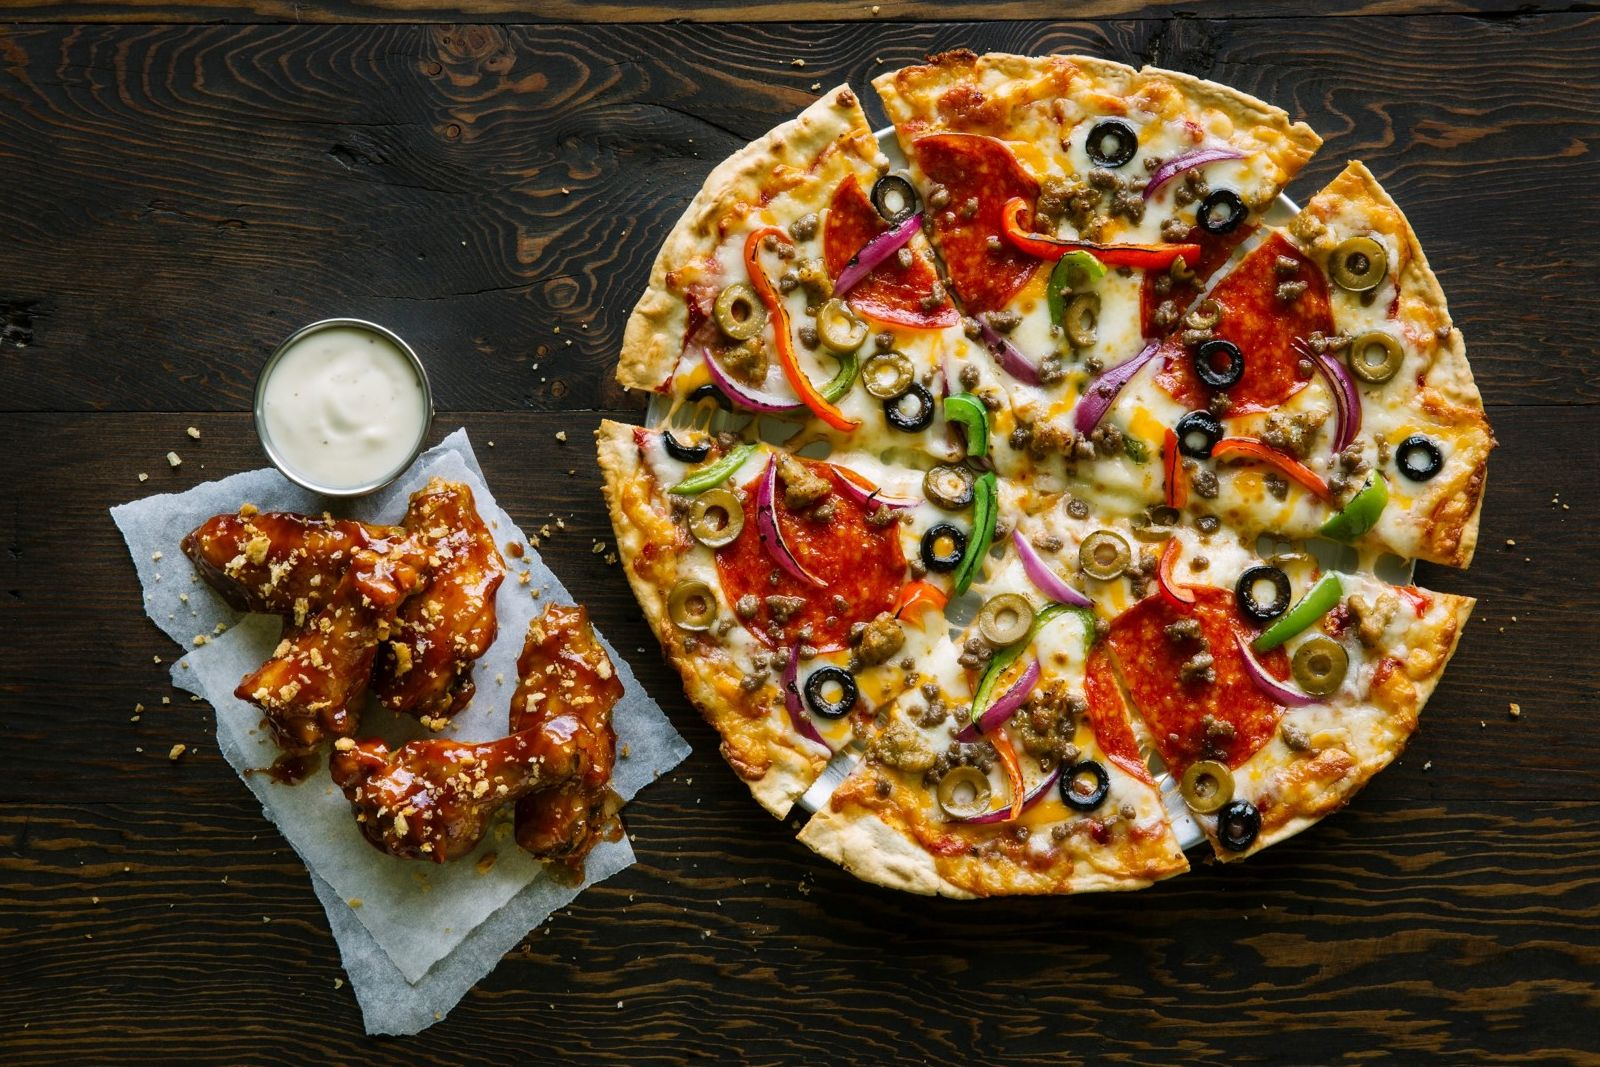 Pie Five Continues To Revolutionize The Fast Casual Pizza Space